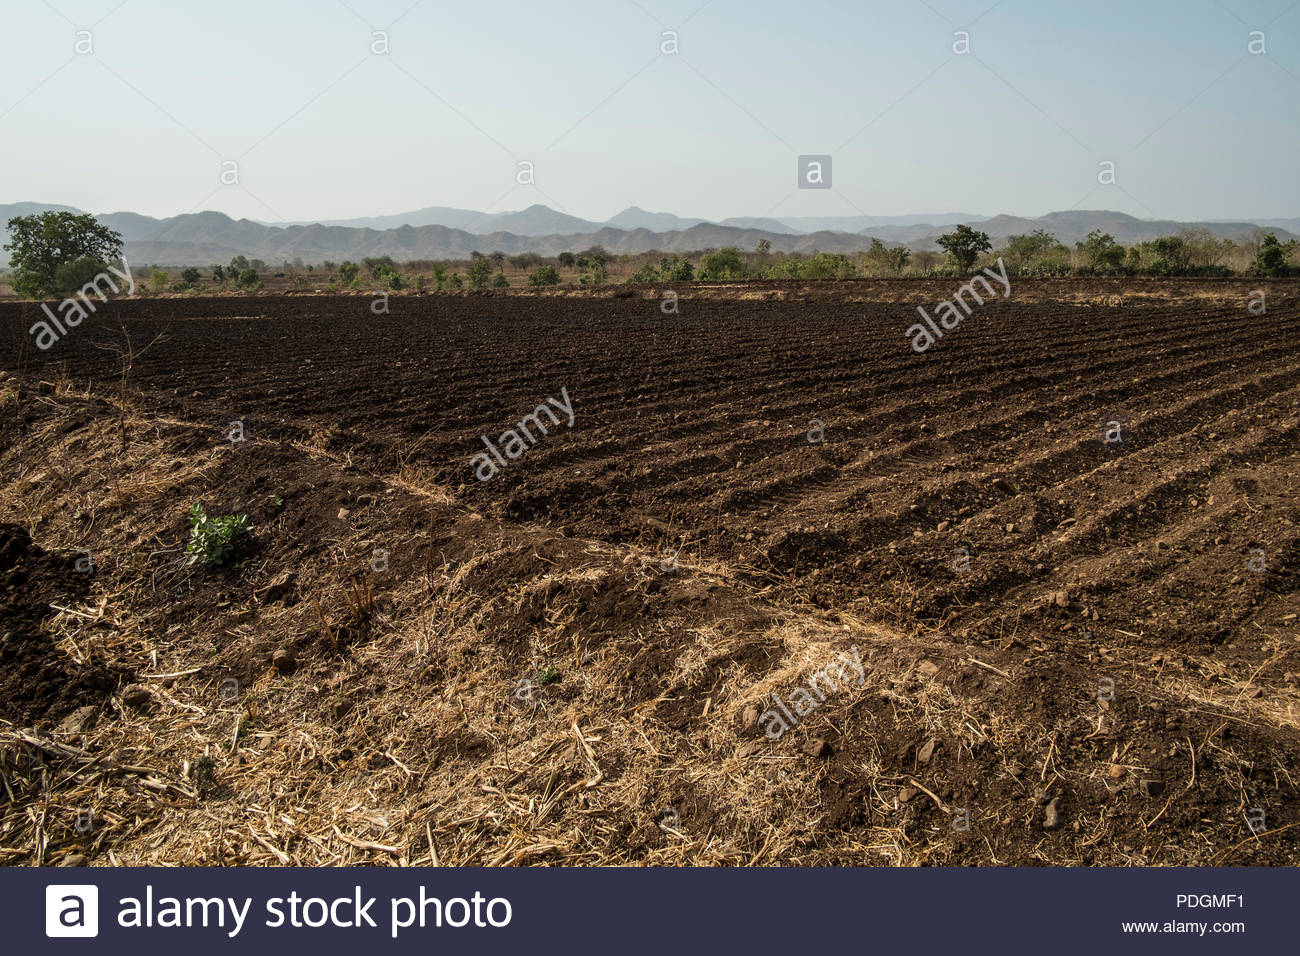 Tilled Land Stock Photos Tilled Land Stock Images   Alamy 1300x956